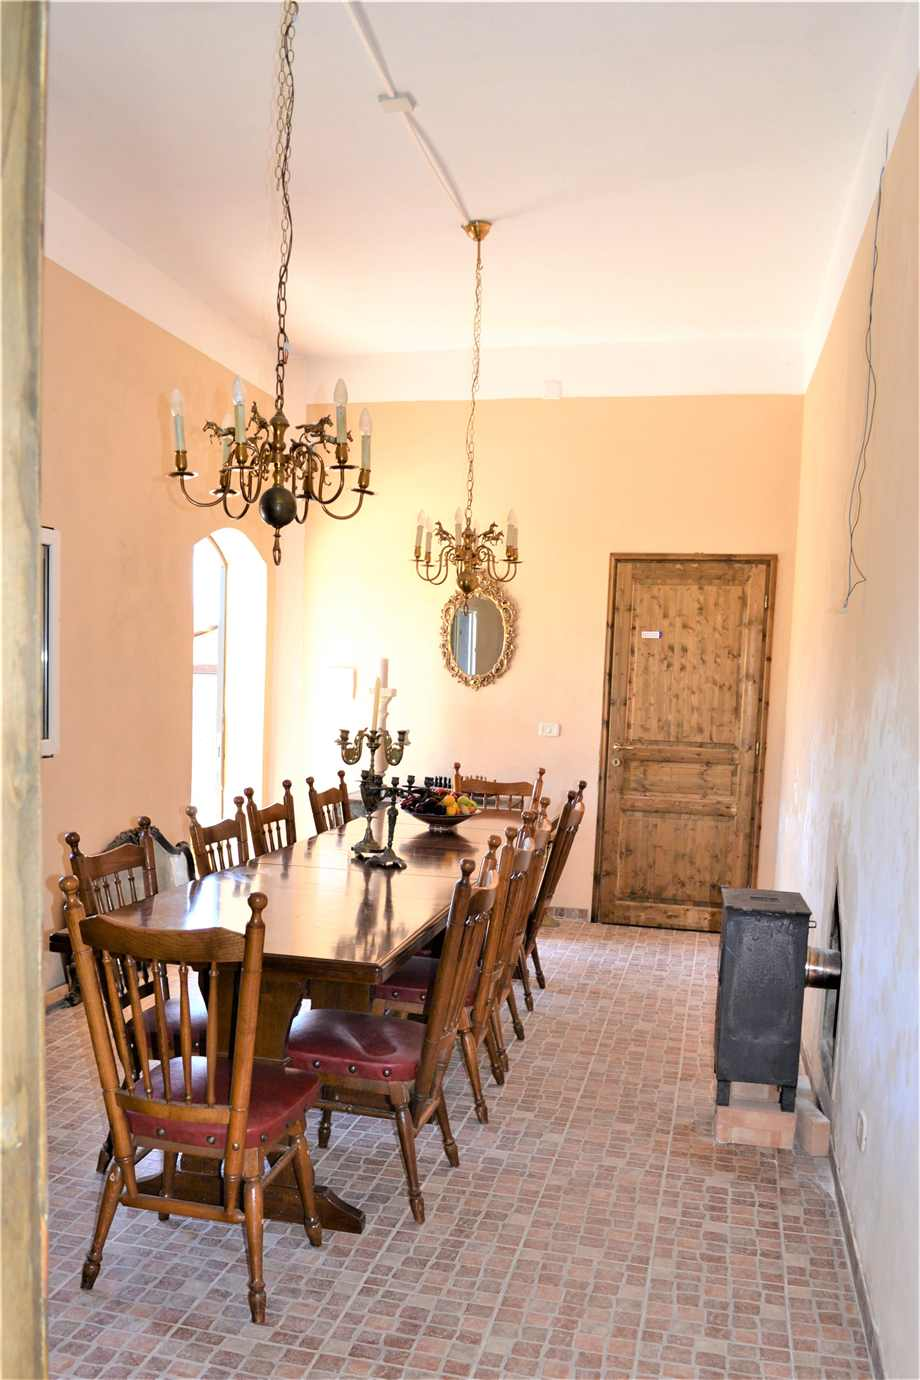 To rent Detached house Avola  #A7A n.6